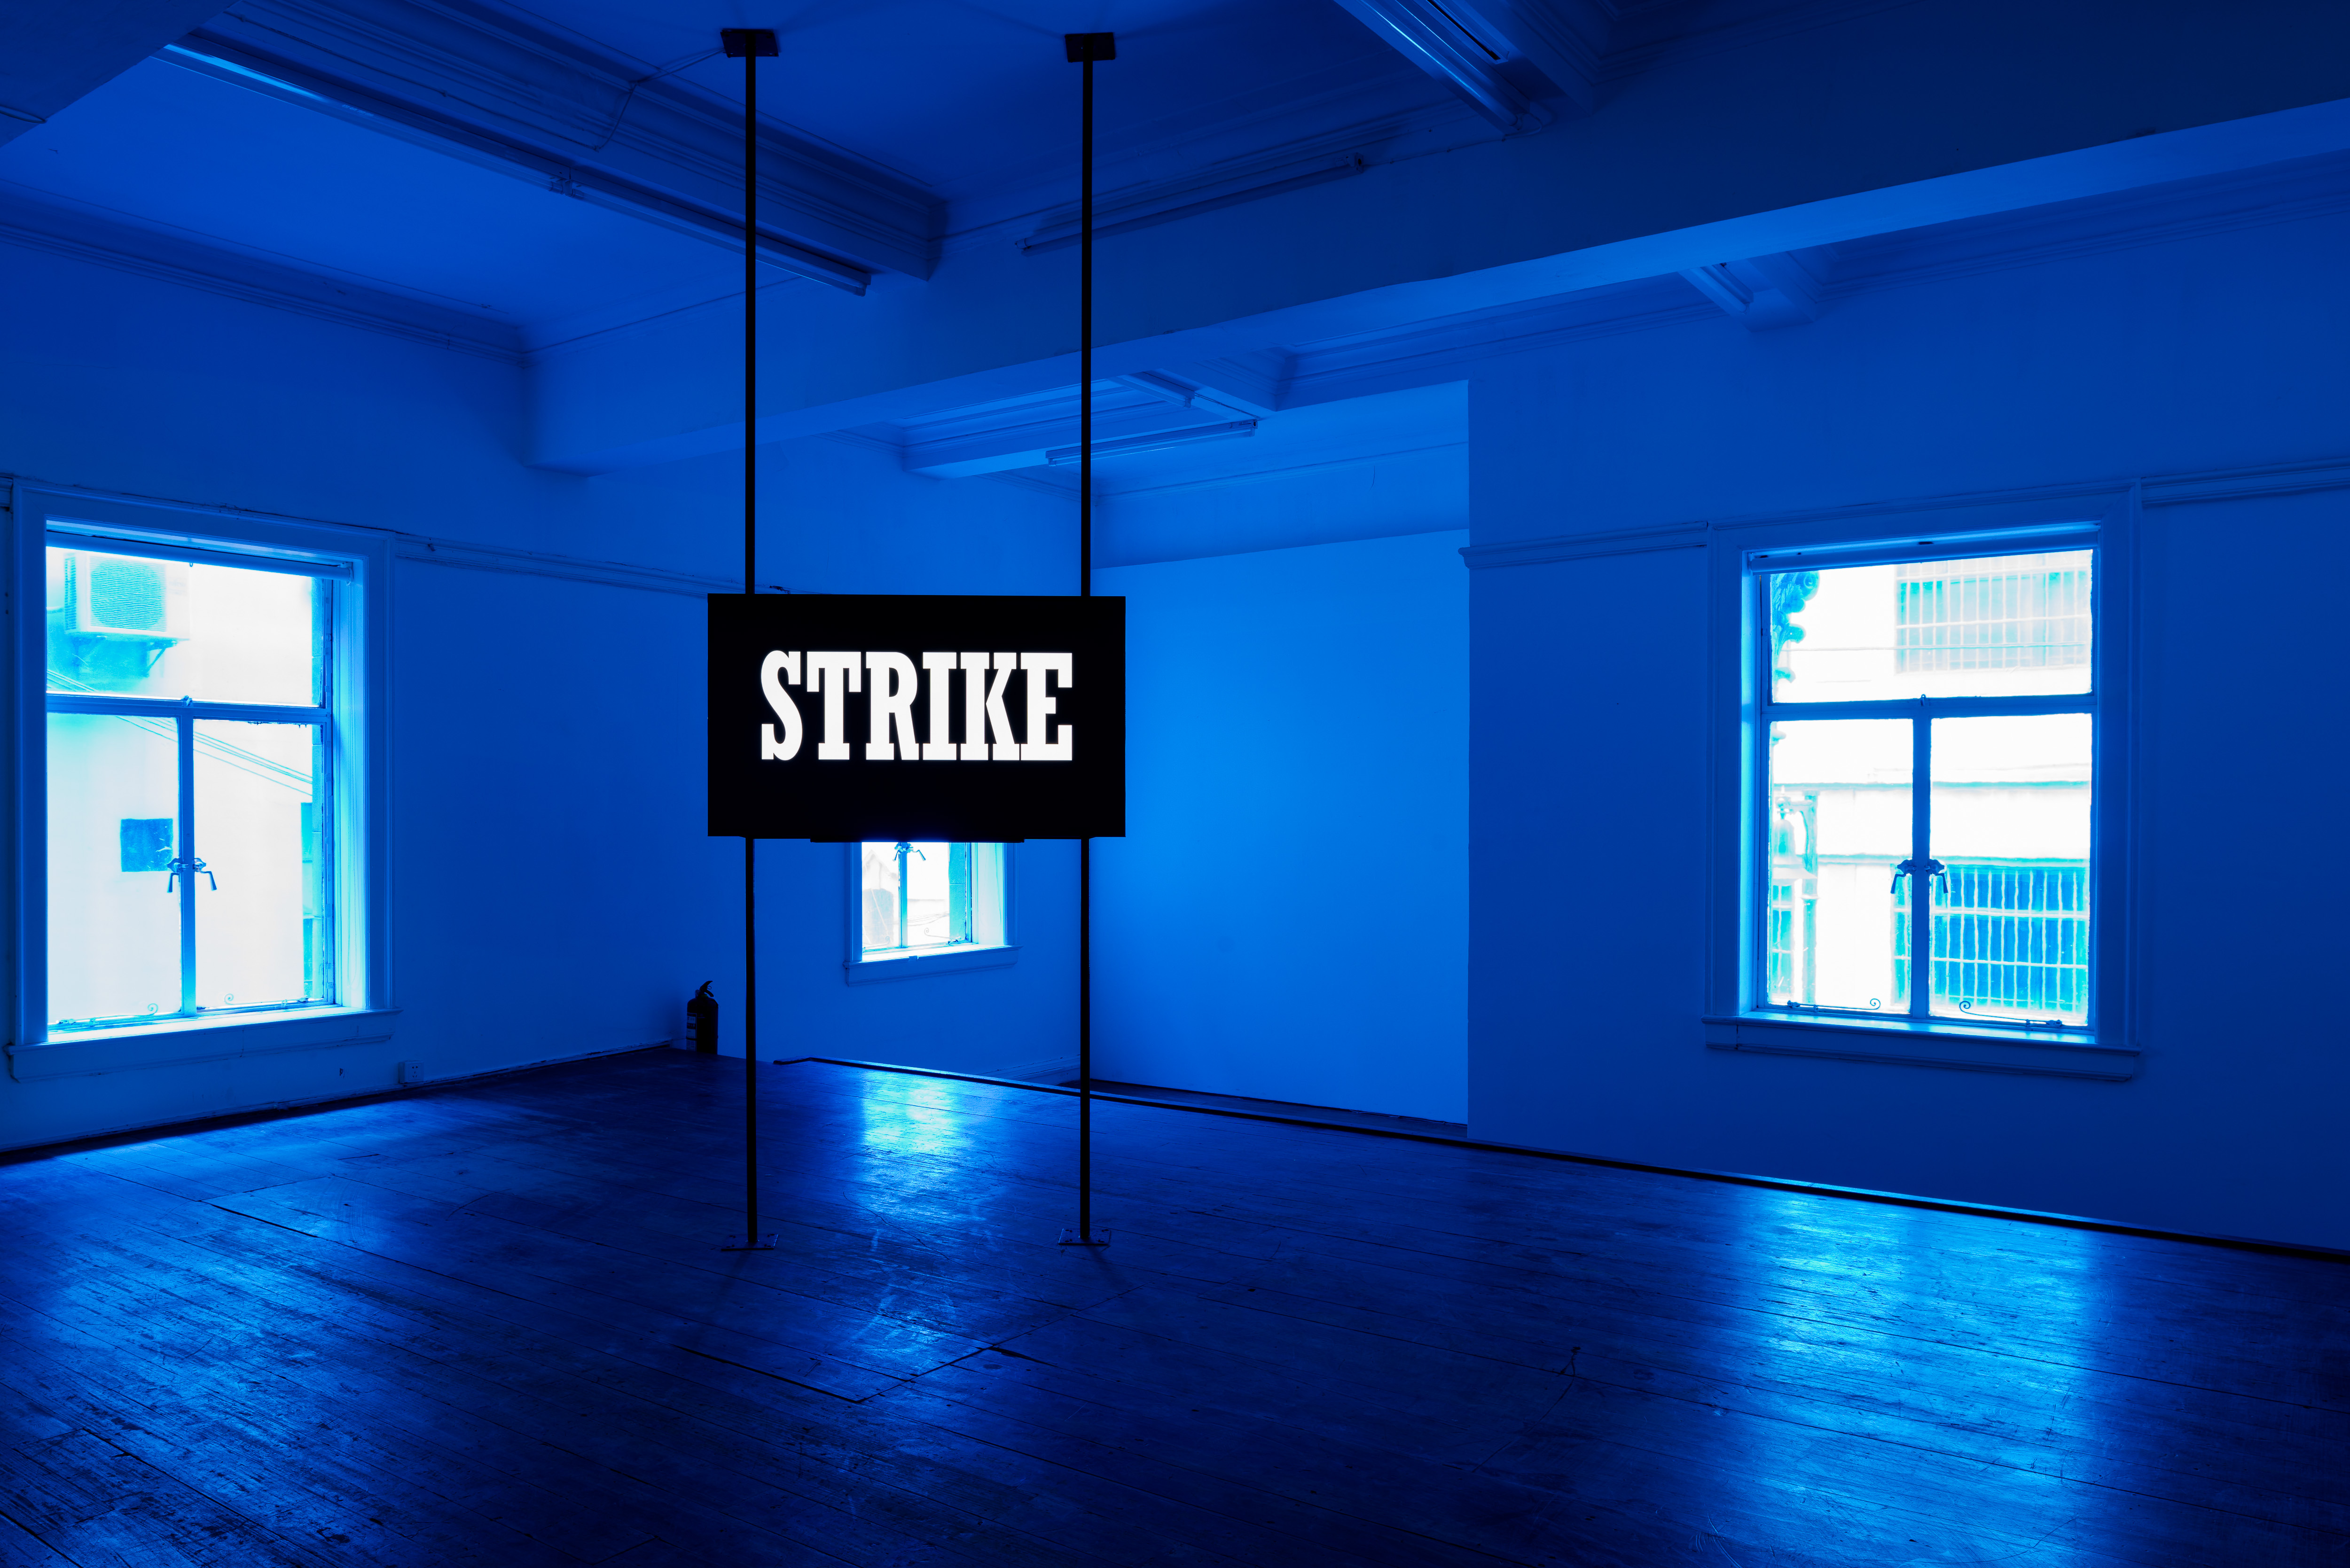 Hito Steyerl, Strike, Video, HDV; Installation with flat screen(minimum 46 in.) mounted on two free standing poles, 28 seconds, Edition 4 of 5, with 2 Aps, 2010